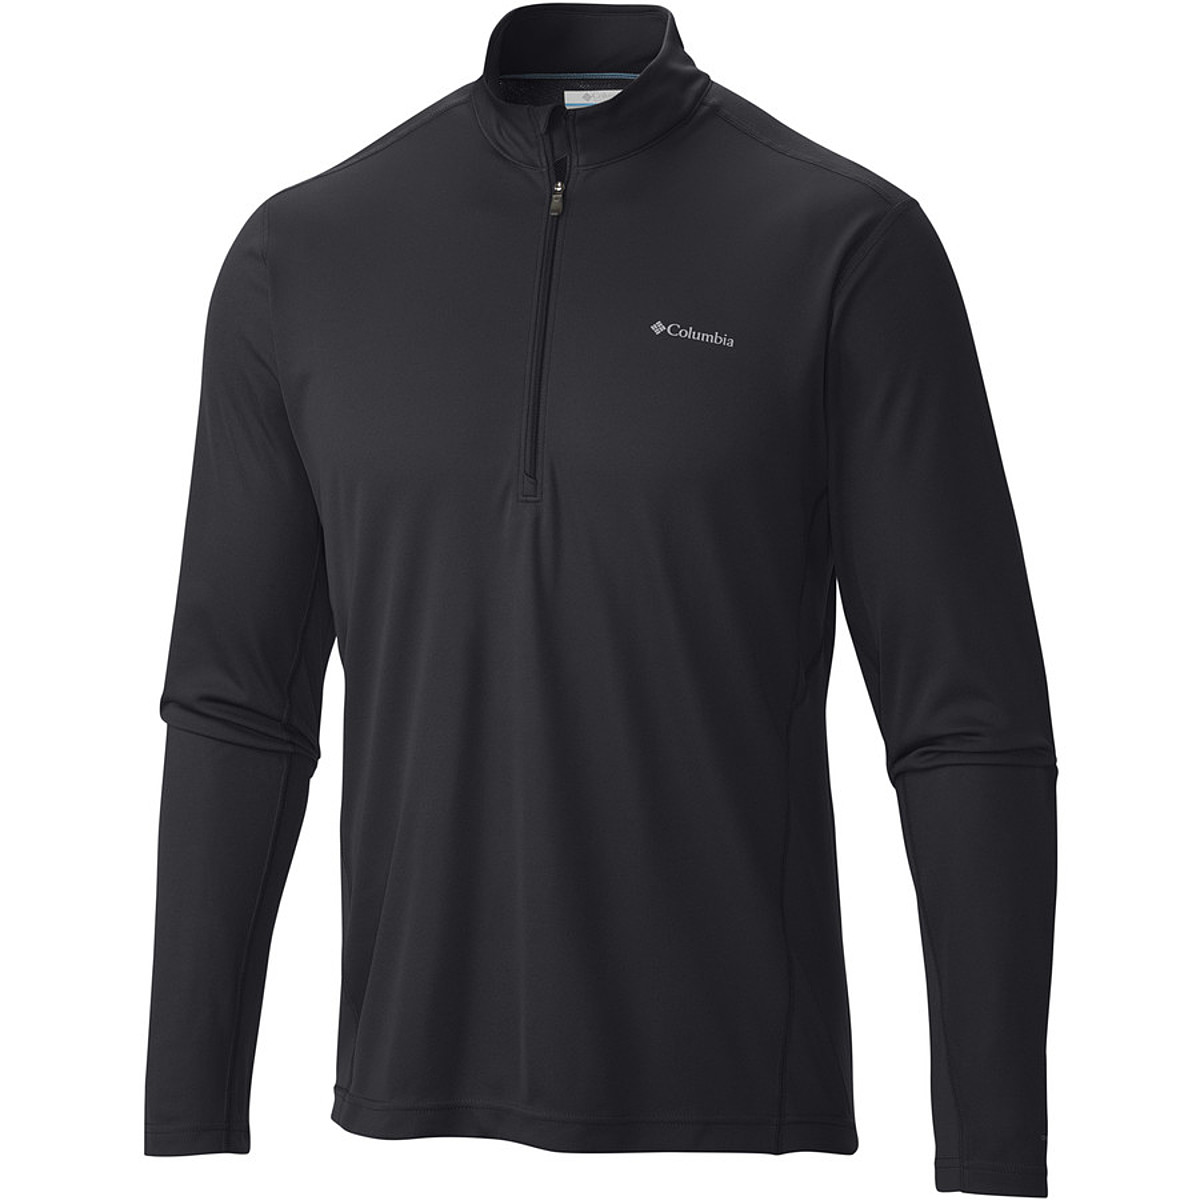 Columbia Baselayer Midweight Half-Zip Top - Long Sleeve